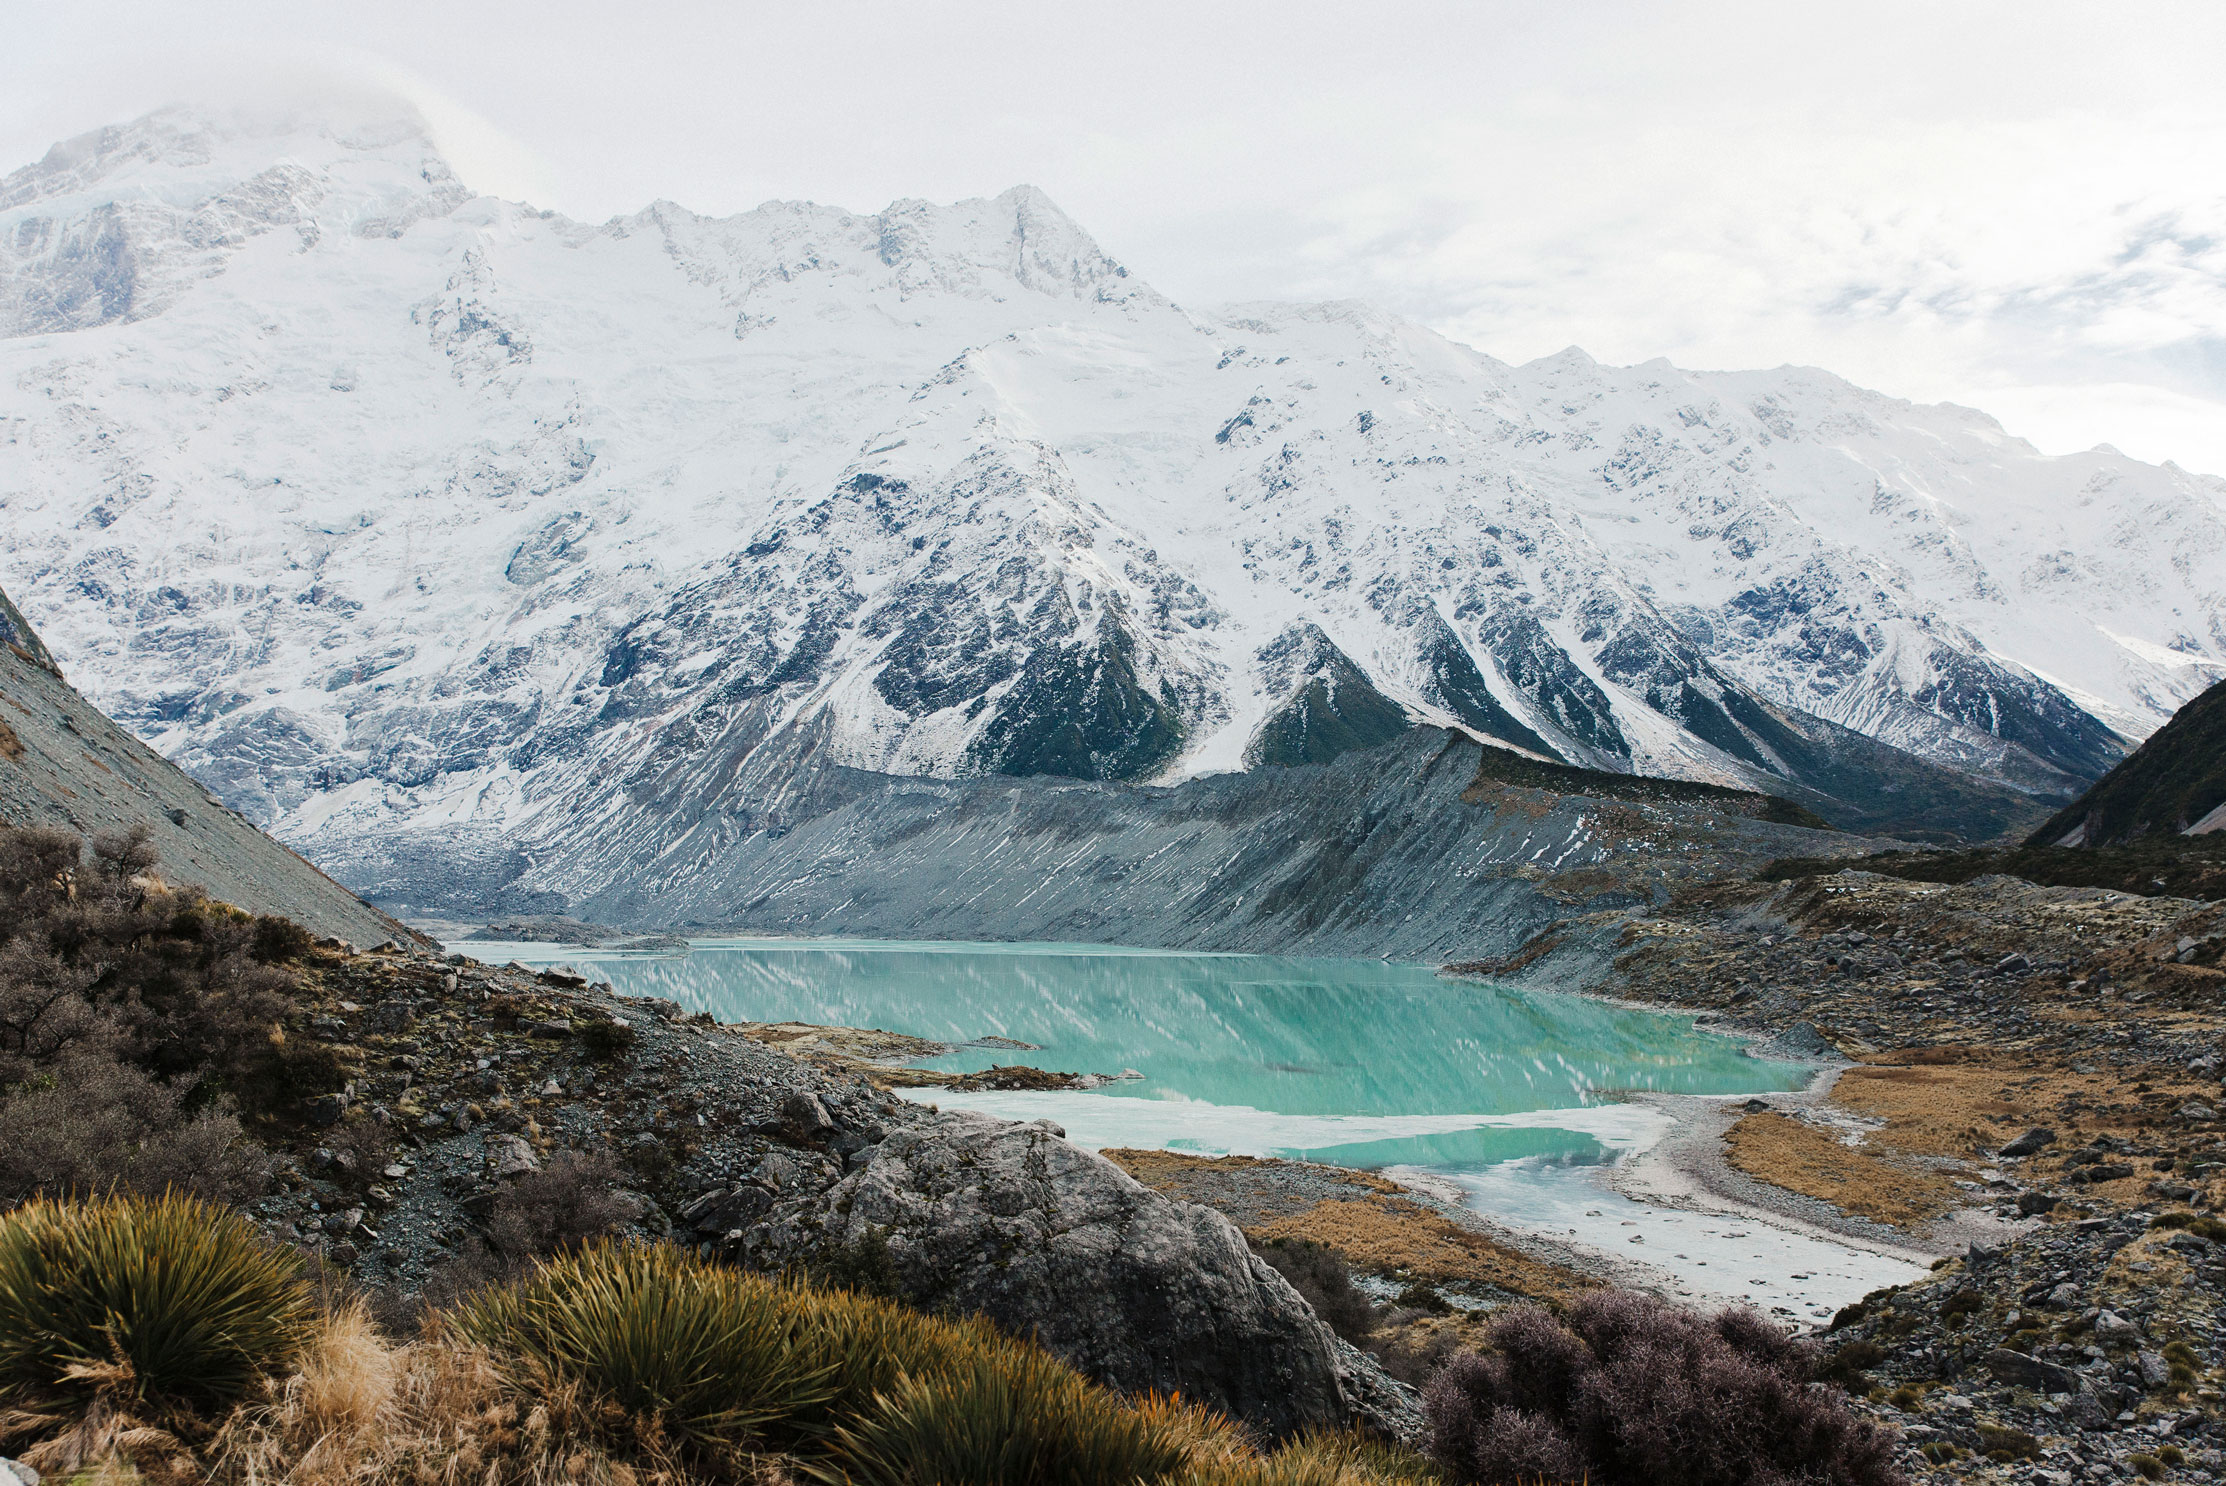 DSC_4125-MT-COOK-WEB.jpg